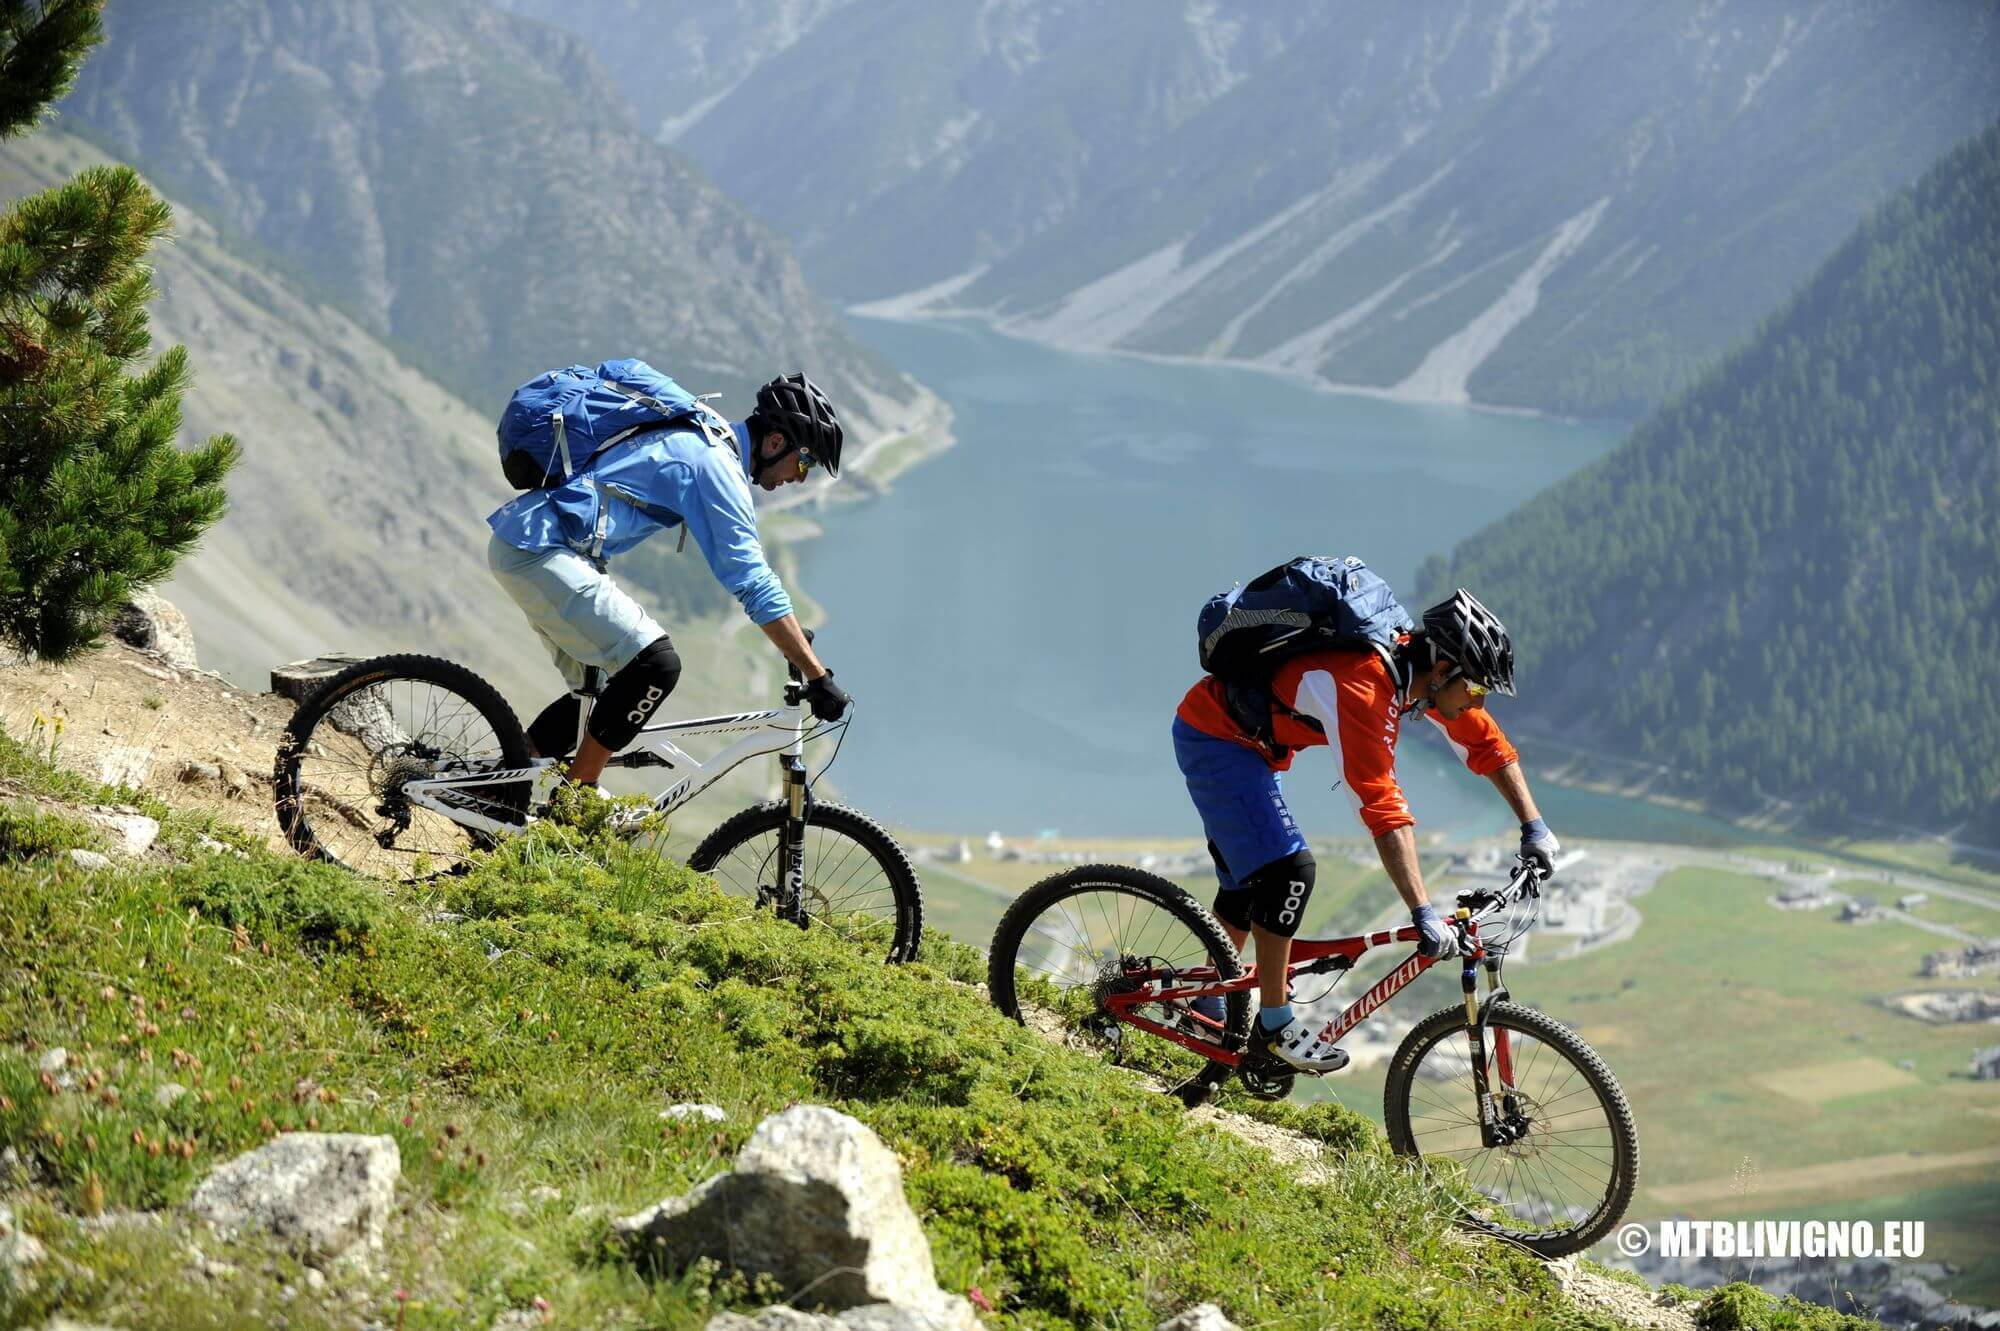 Mountain Bike a Livigno - Alpi